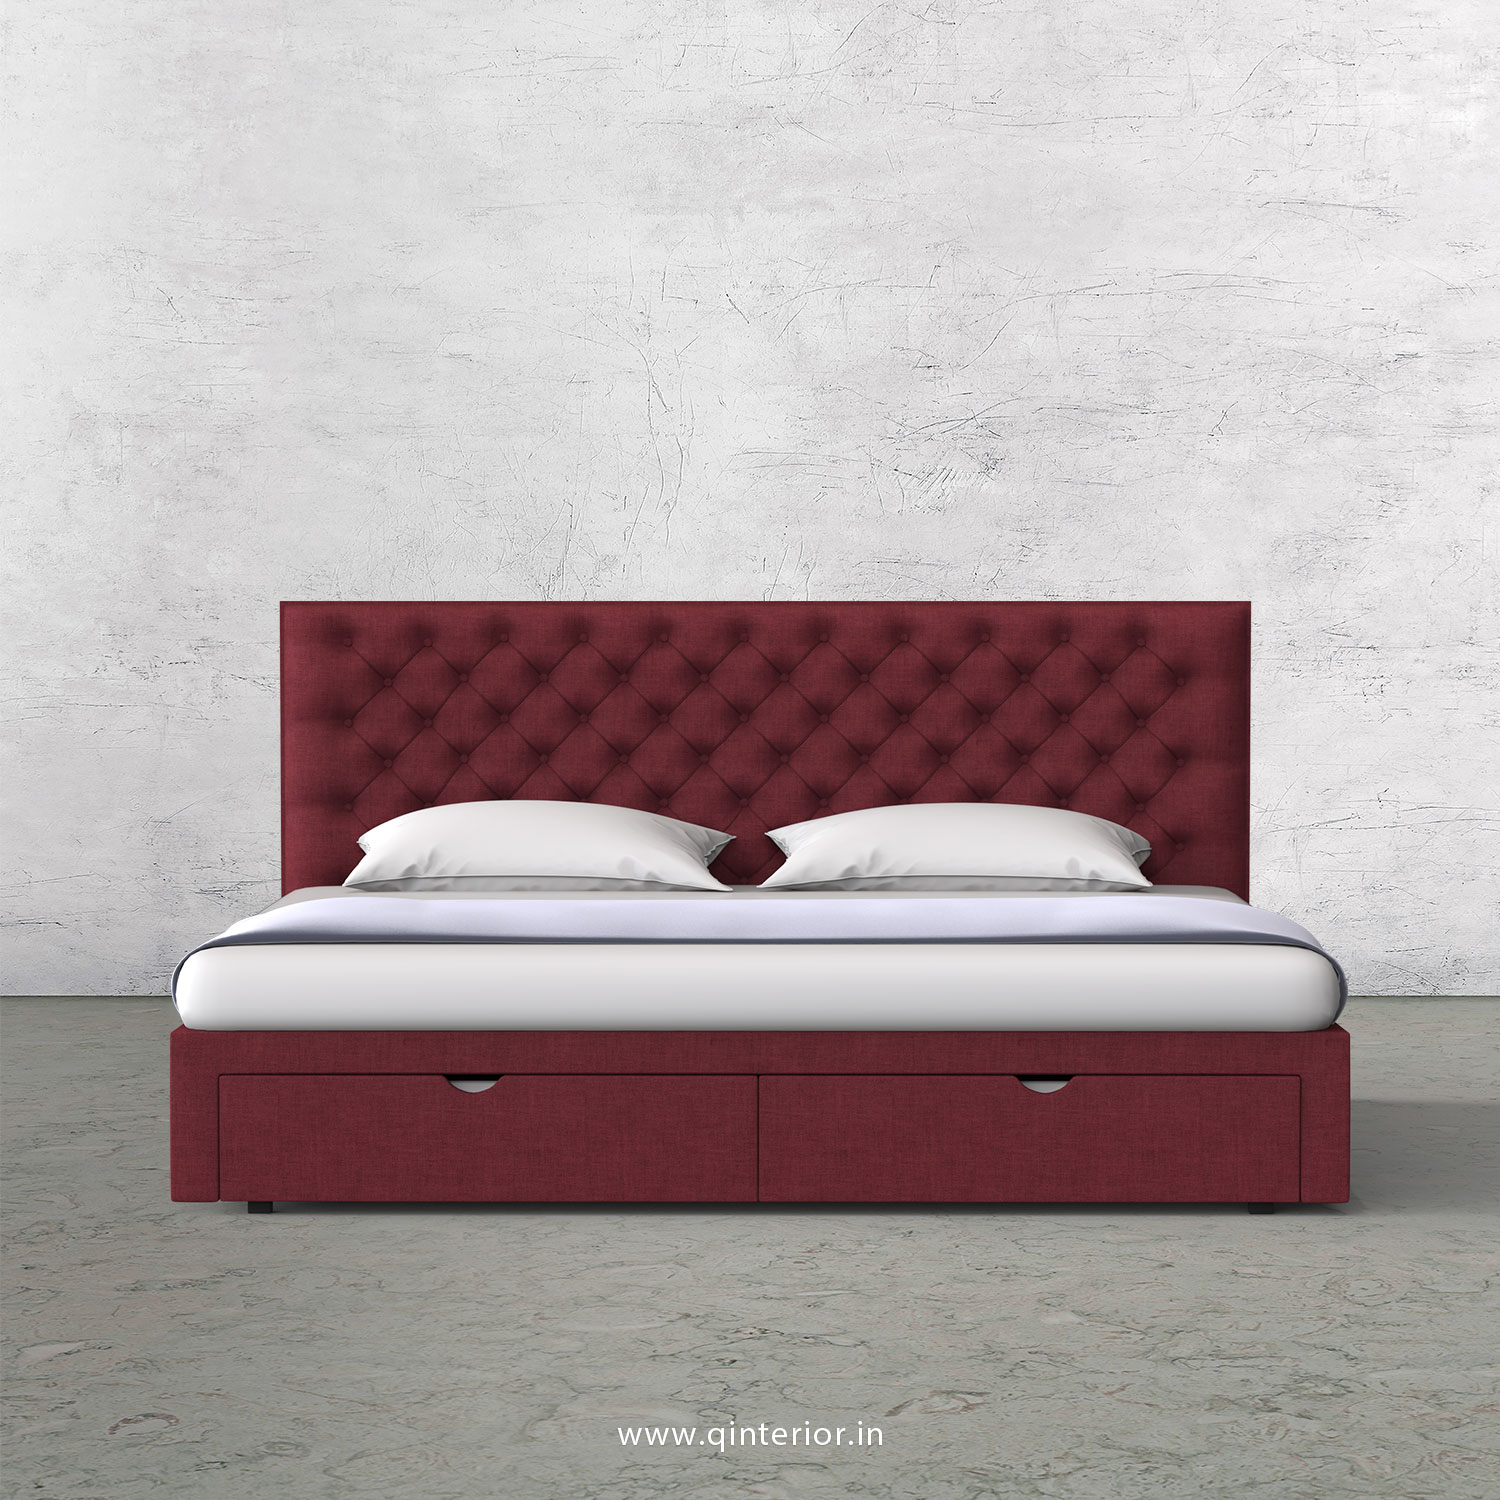 Orion King Size Storage Bed in Cotton Plain - KBD001 CP24